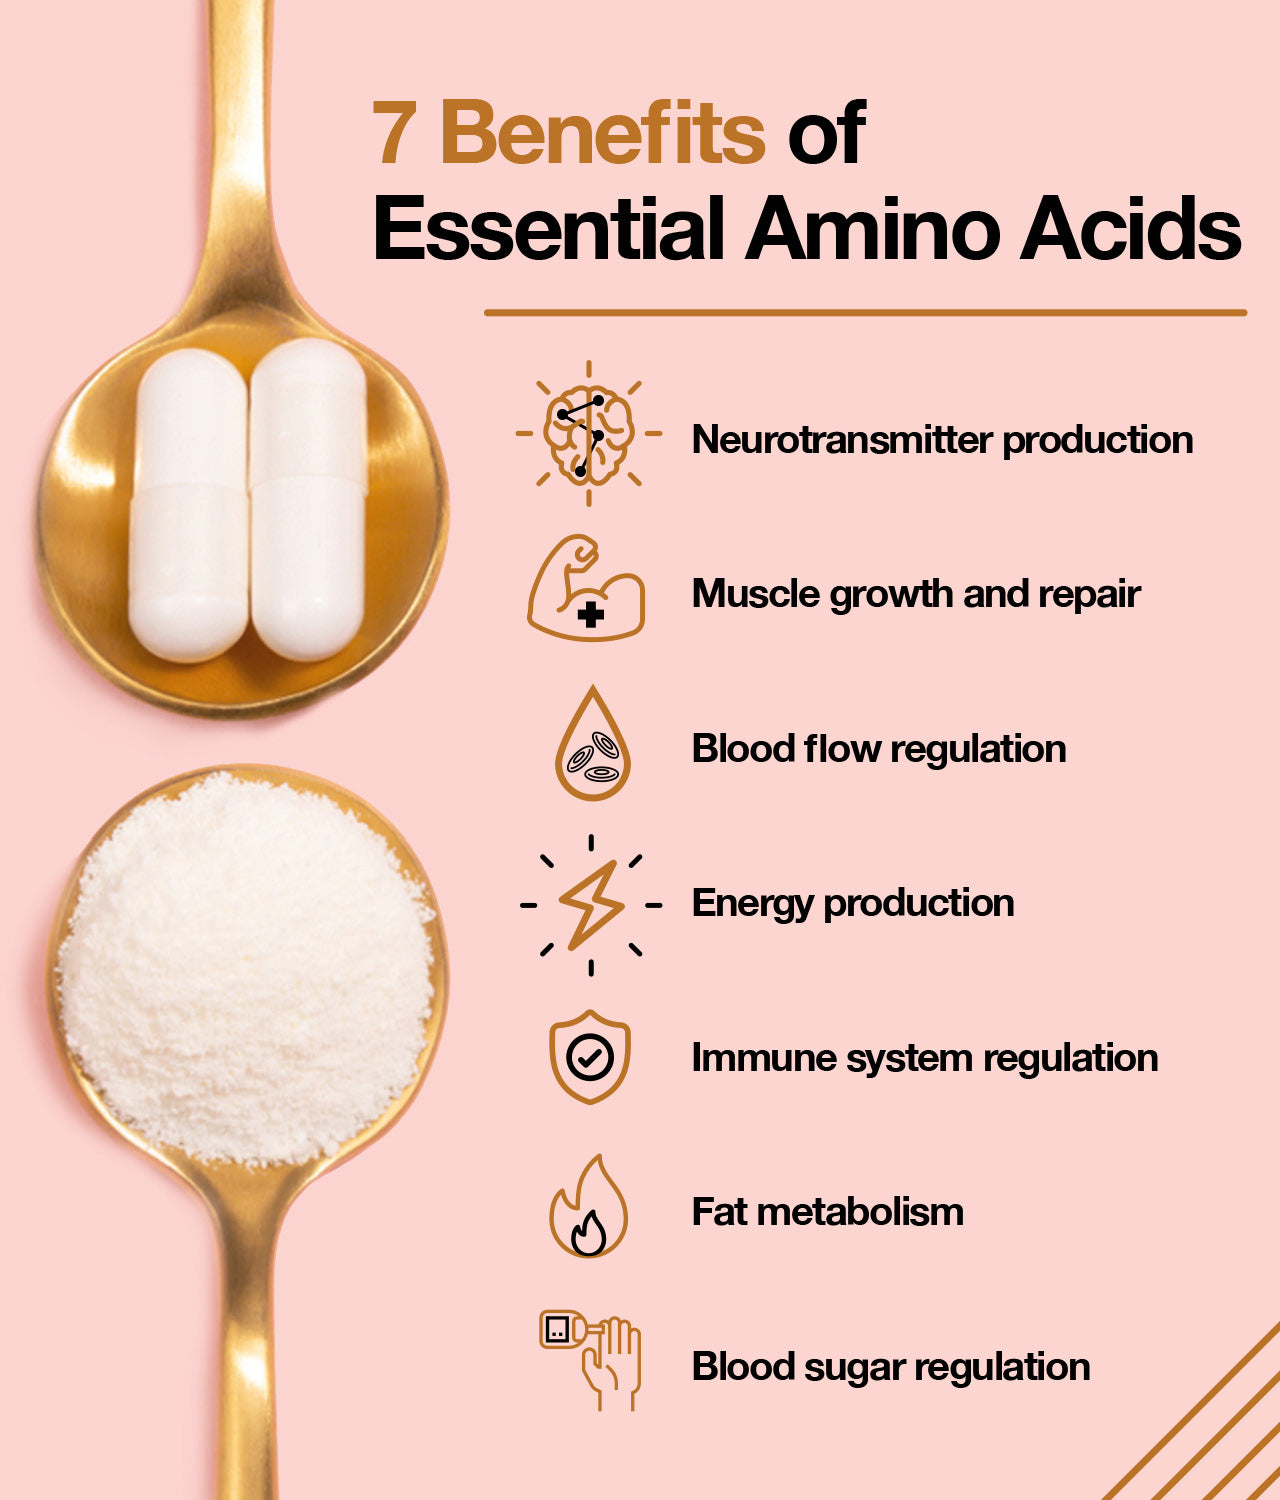 Essential amino acids are the only macronutrients required for survival. A normal diet containing high-quality proteins should deliver adequate amounts of essential amino acids to meet minimal requirements. However, amino acid supplements can provide benefits not achievable with even high-quality protein food sources.